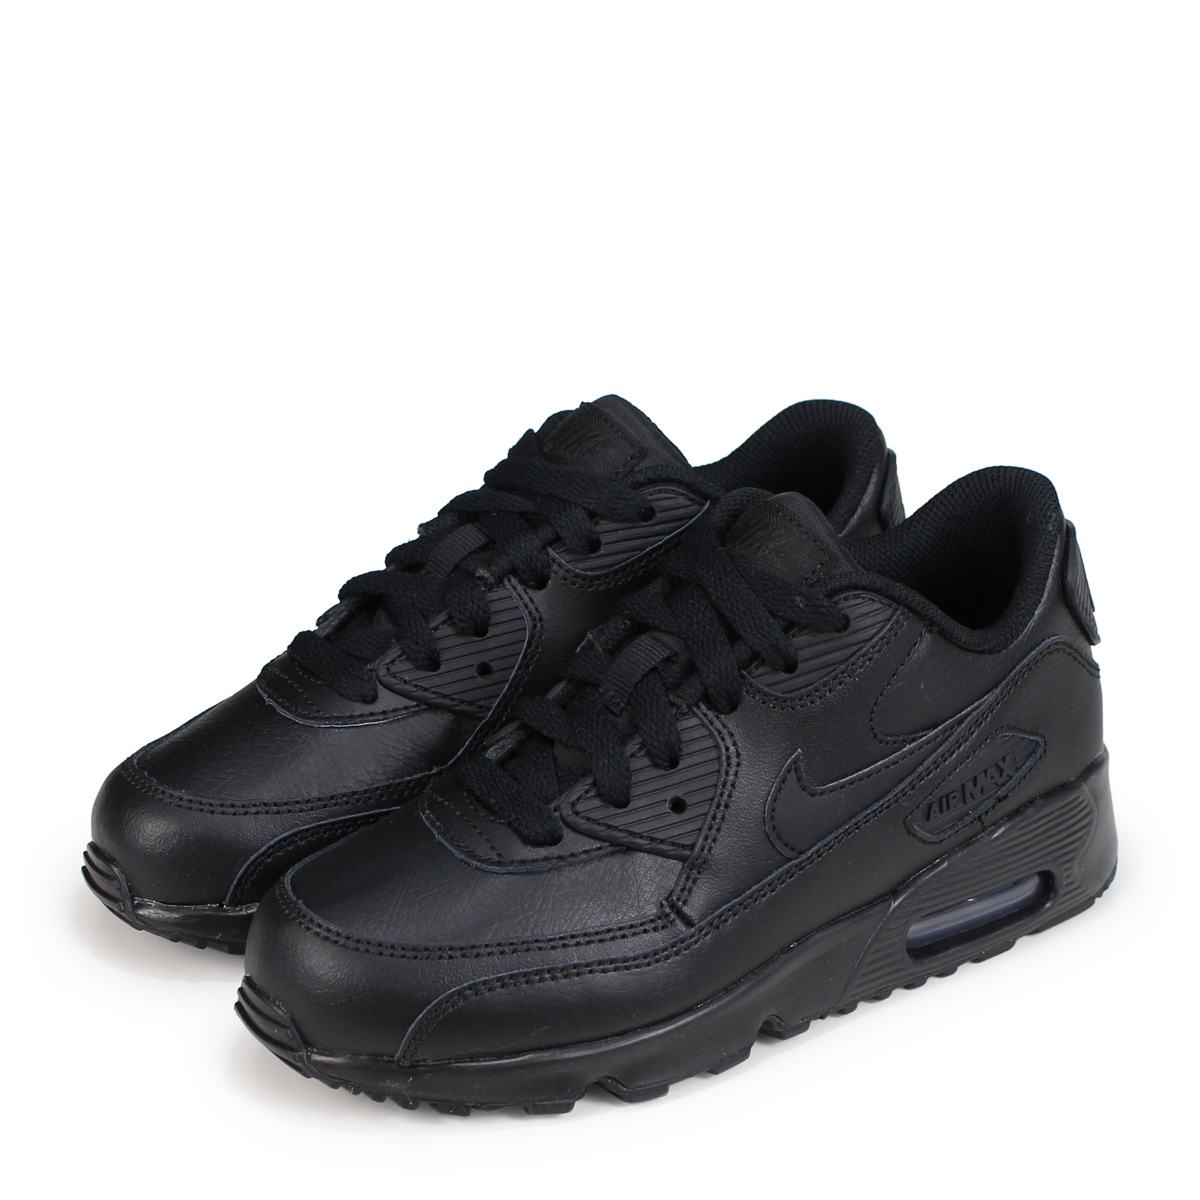 nike air max 90 leather 001